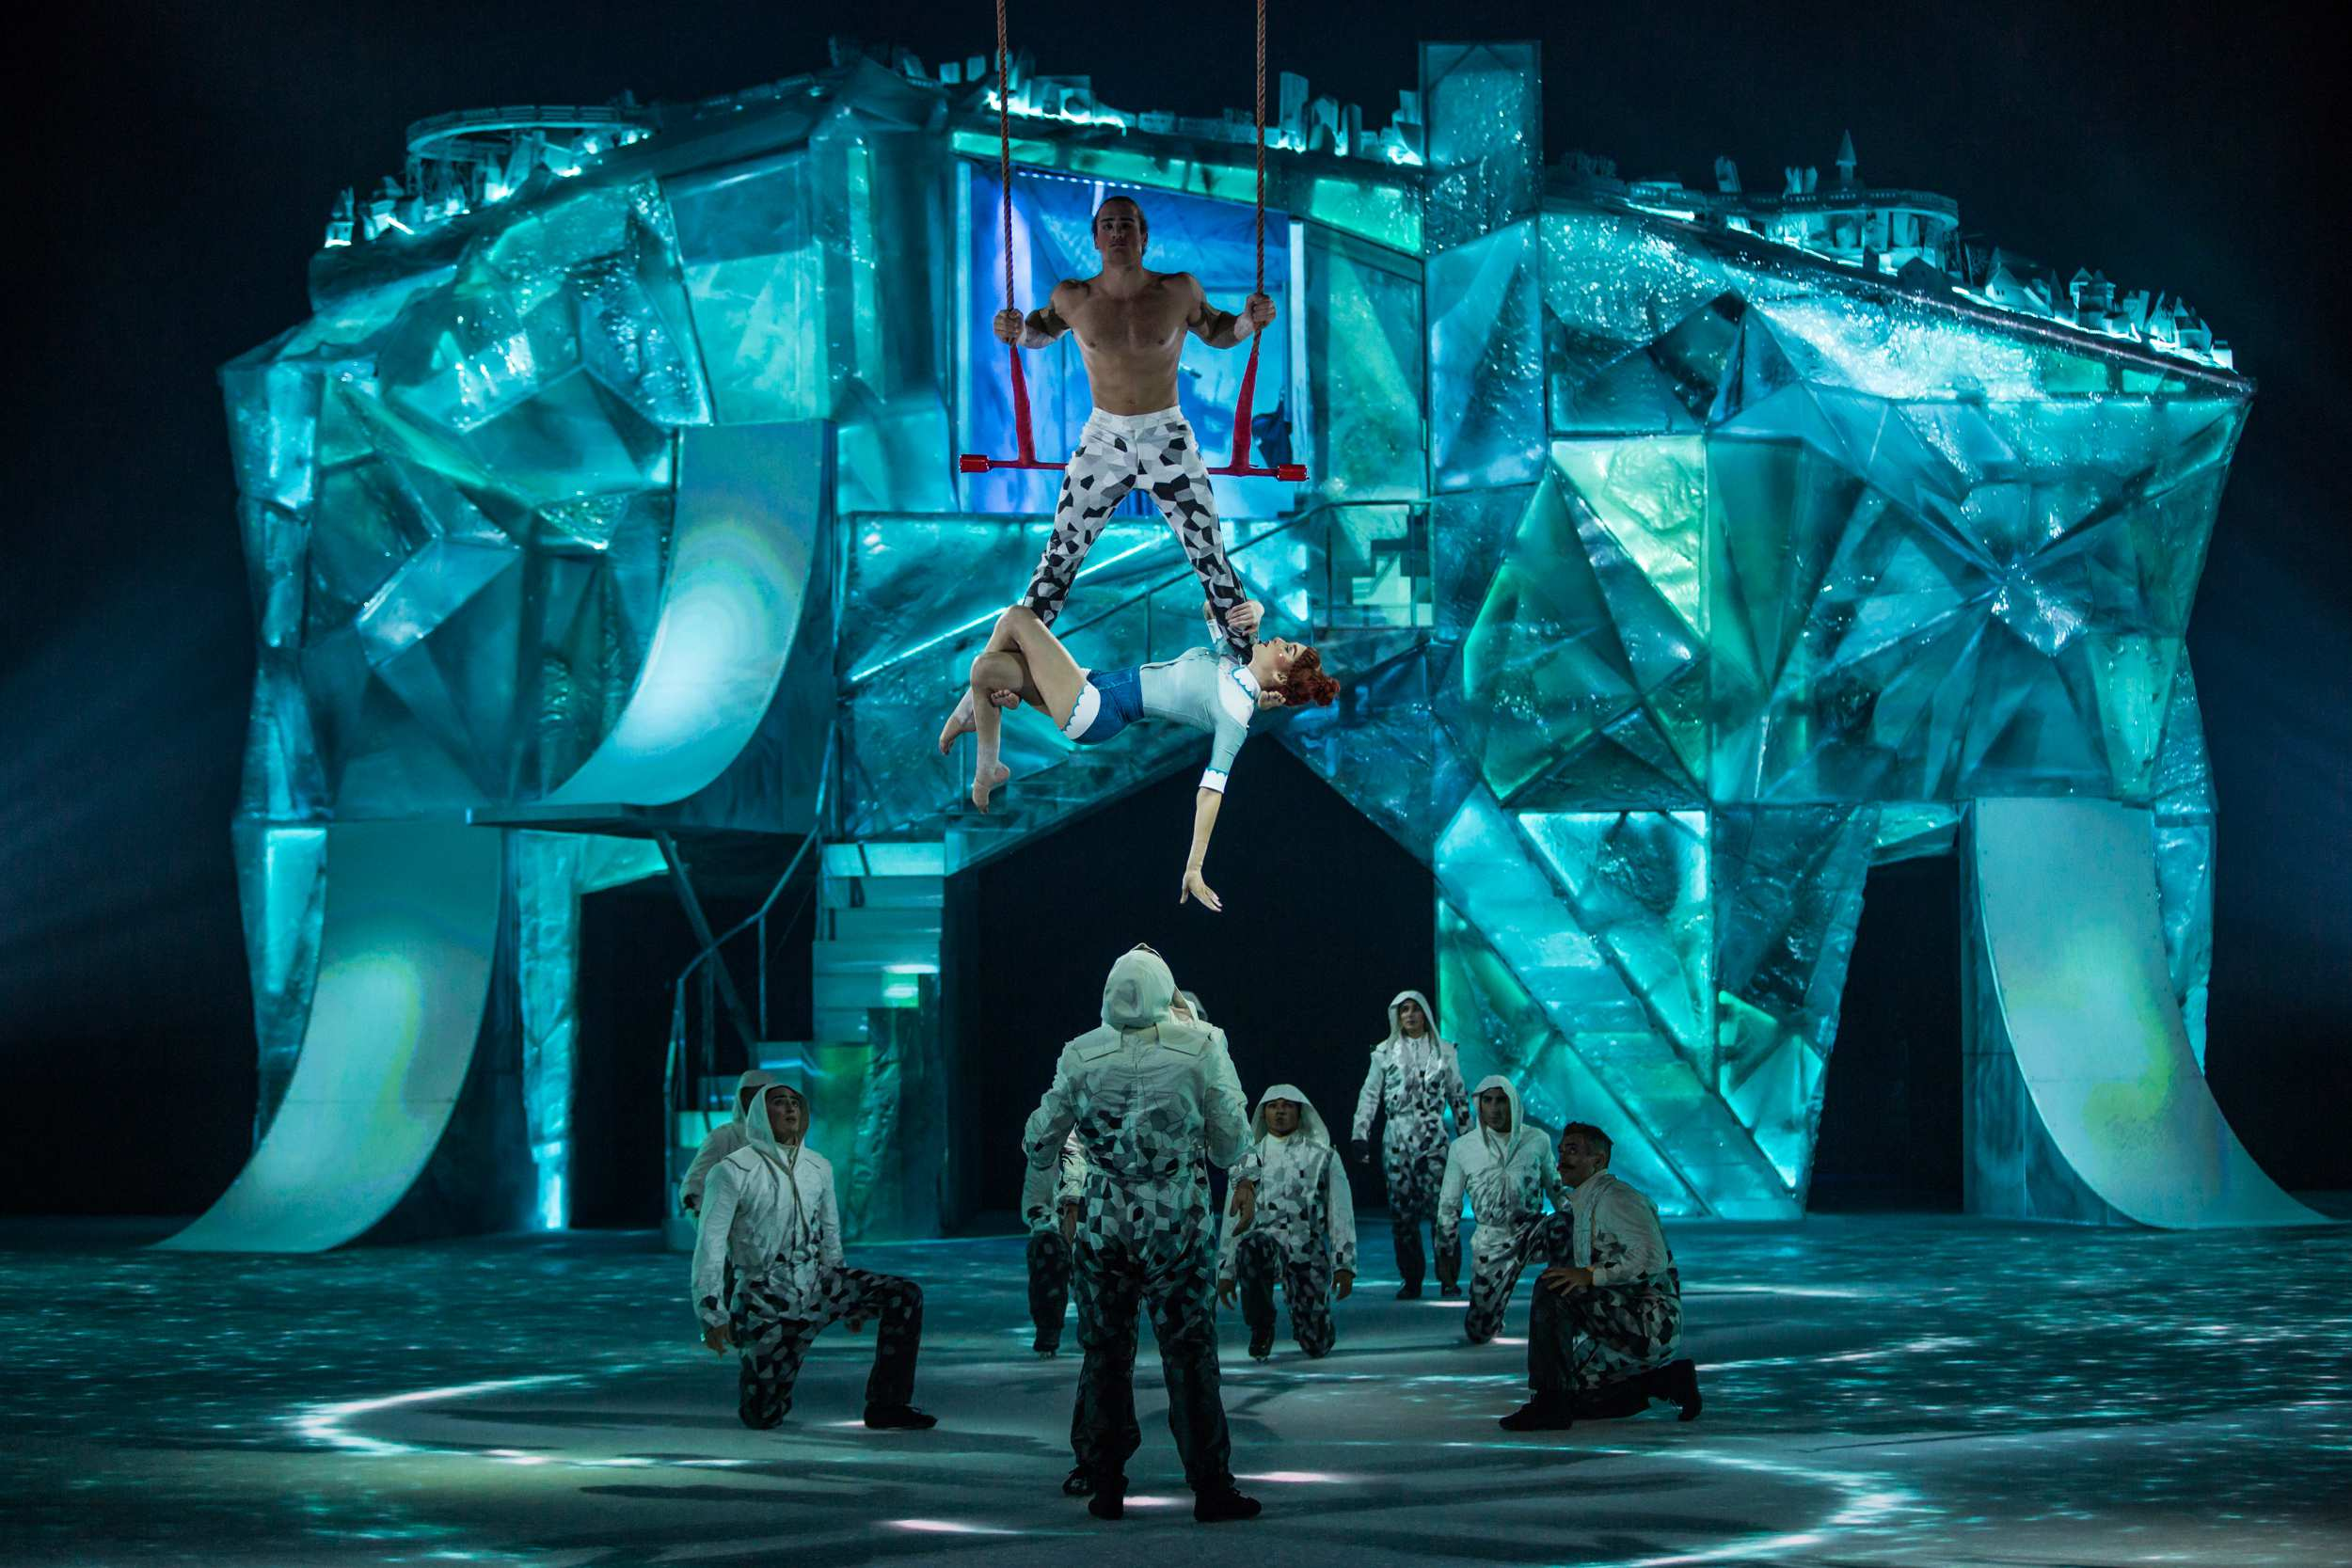 The first acrobatic performance on ice is coming to Northern Ireland